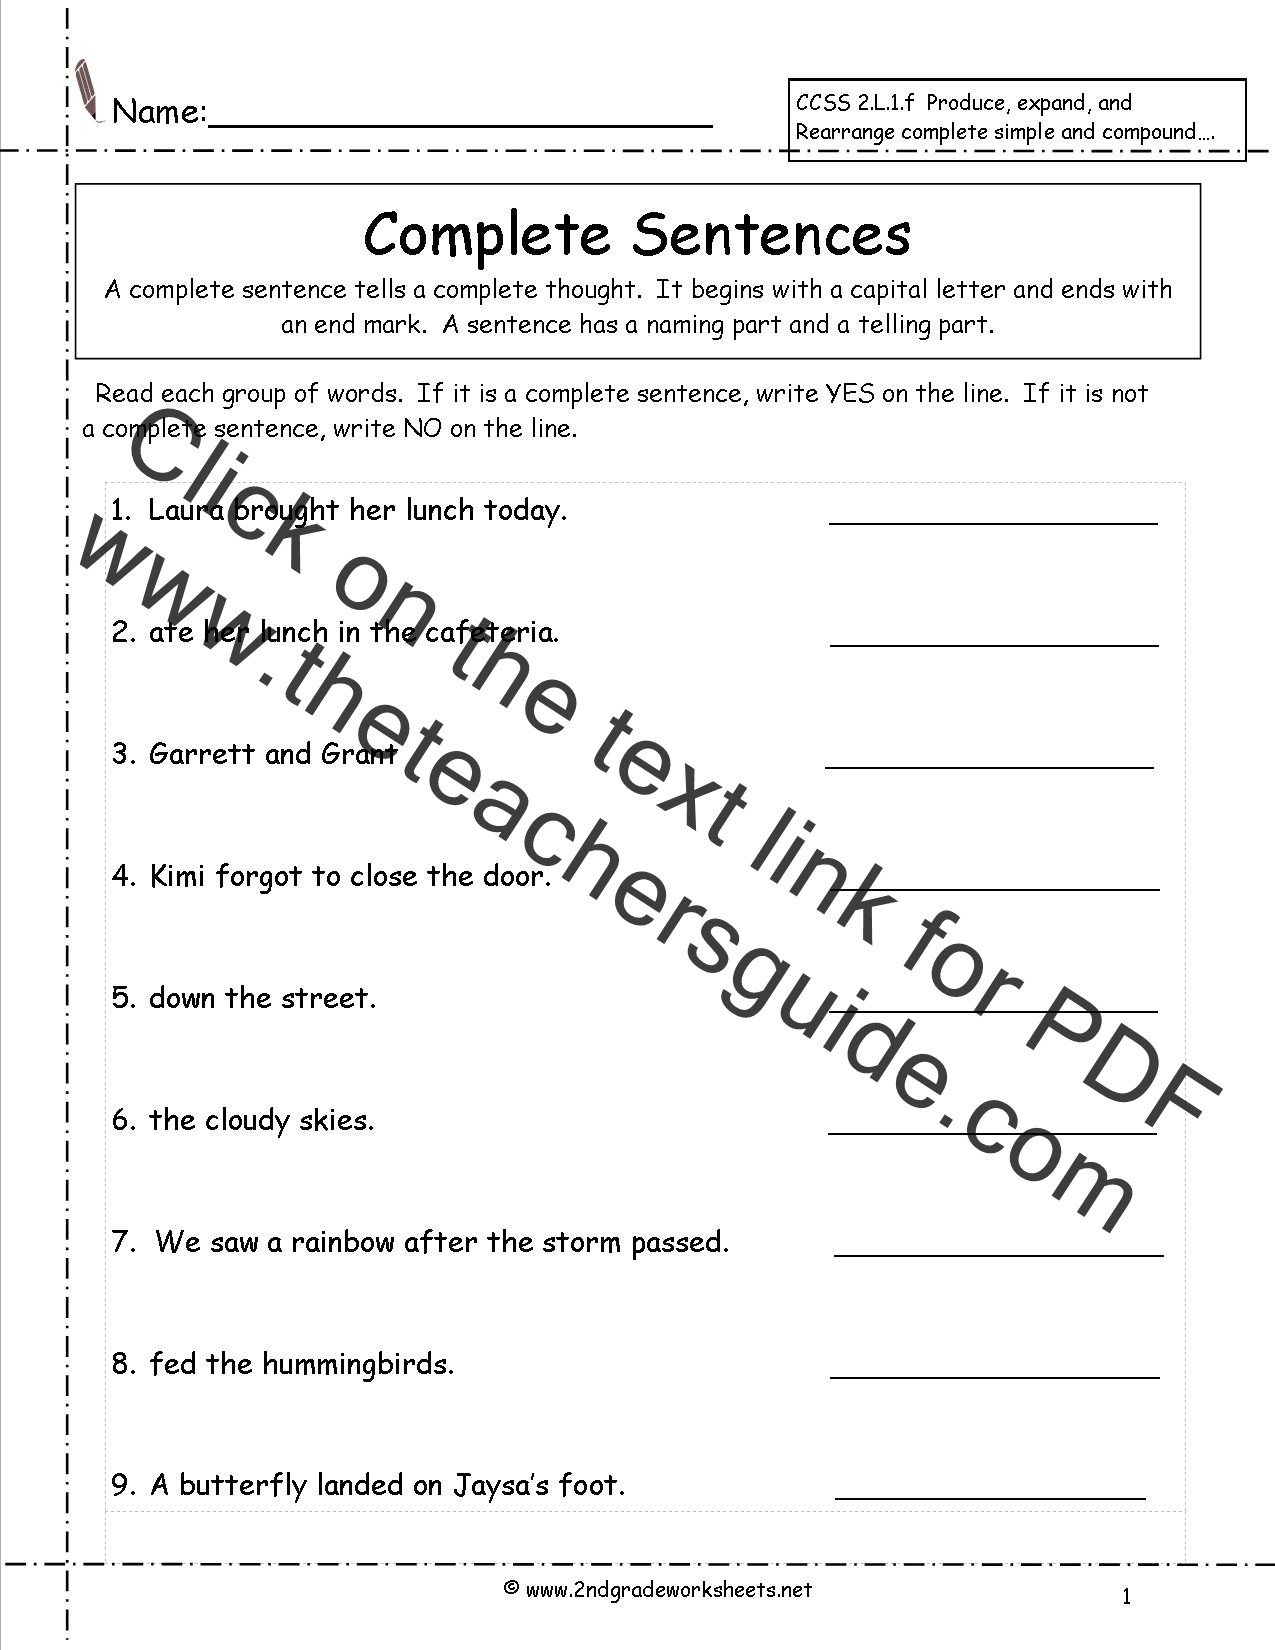 Topic Sentence Worksheet 2nd Grade Second Grade Sentences Worksheets Ccss 2 L 1 F Worksheets